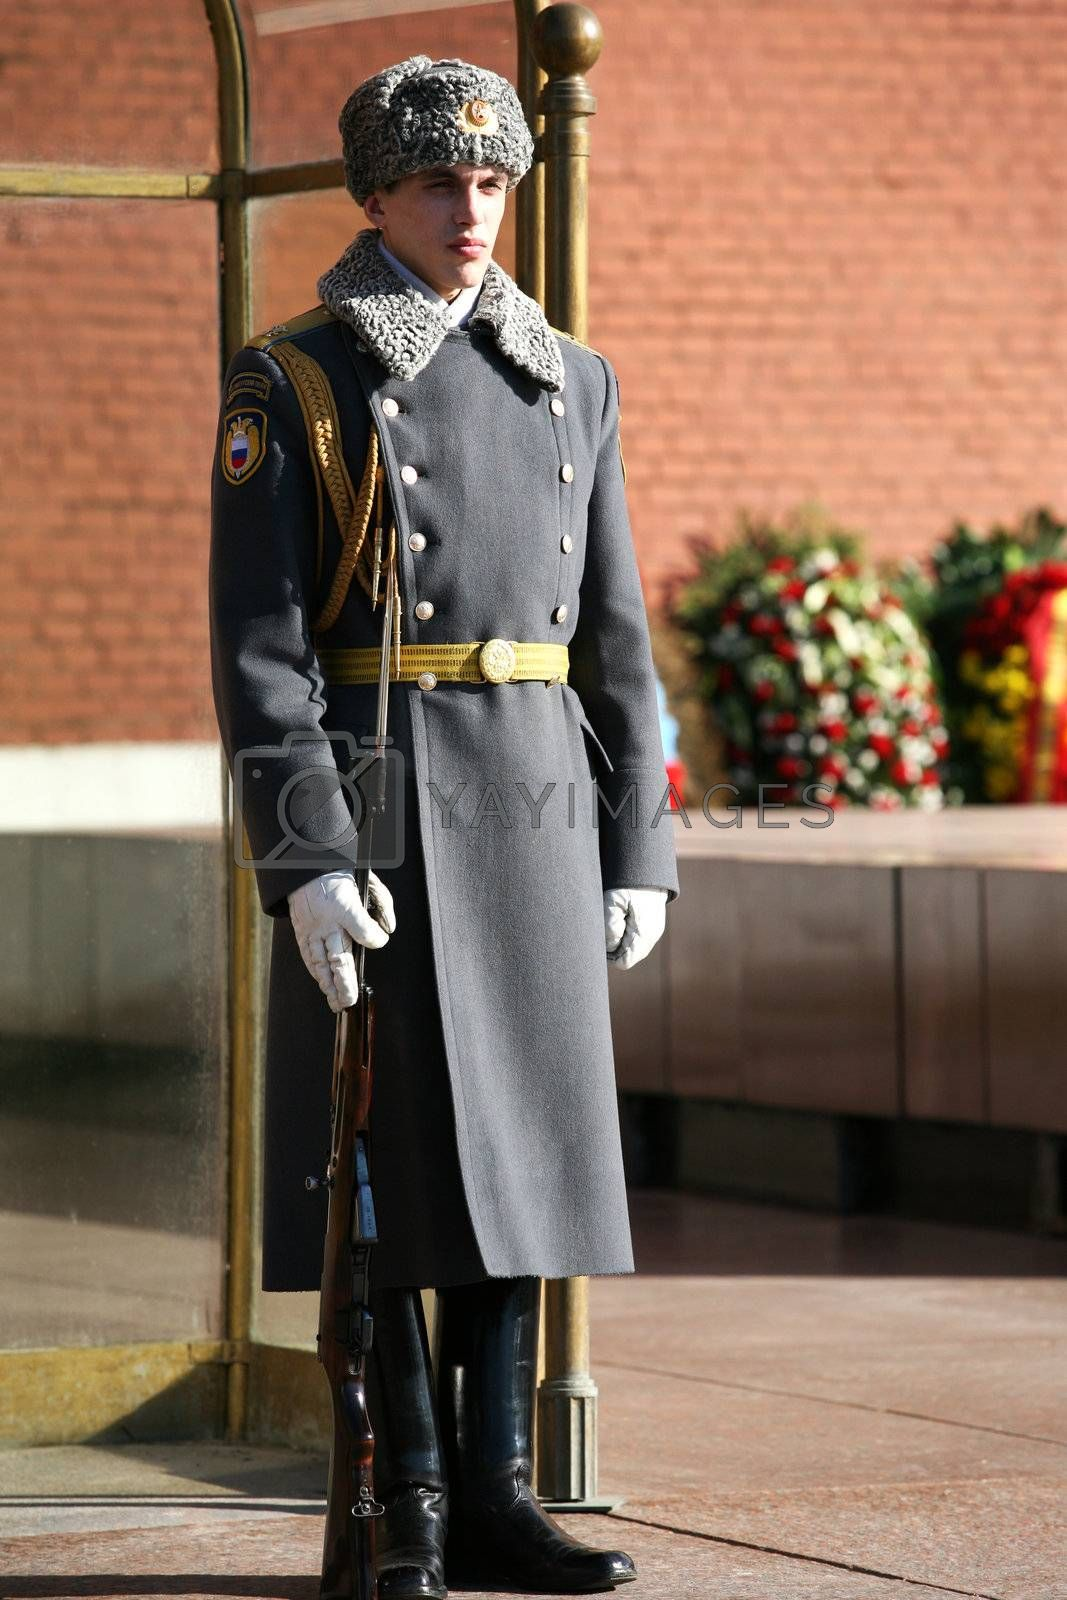 Russian soldier with the weapon, standing at attention